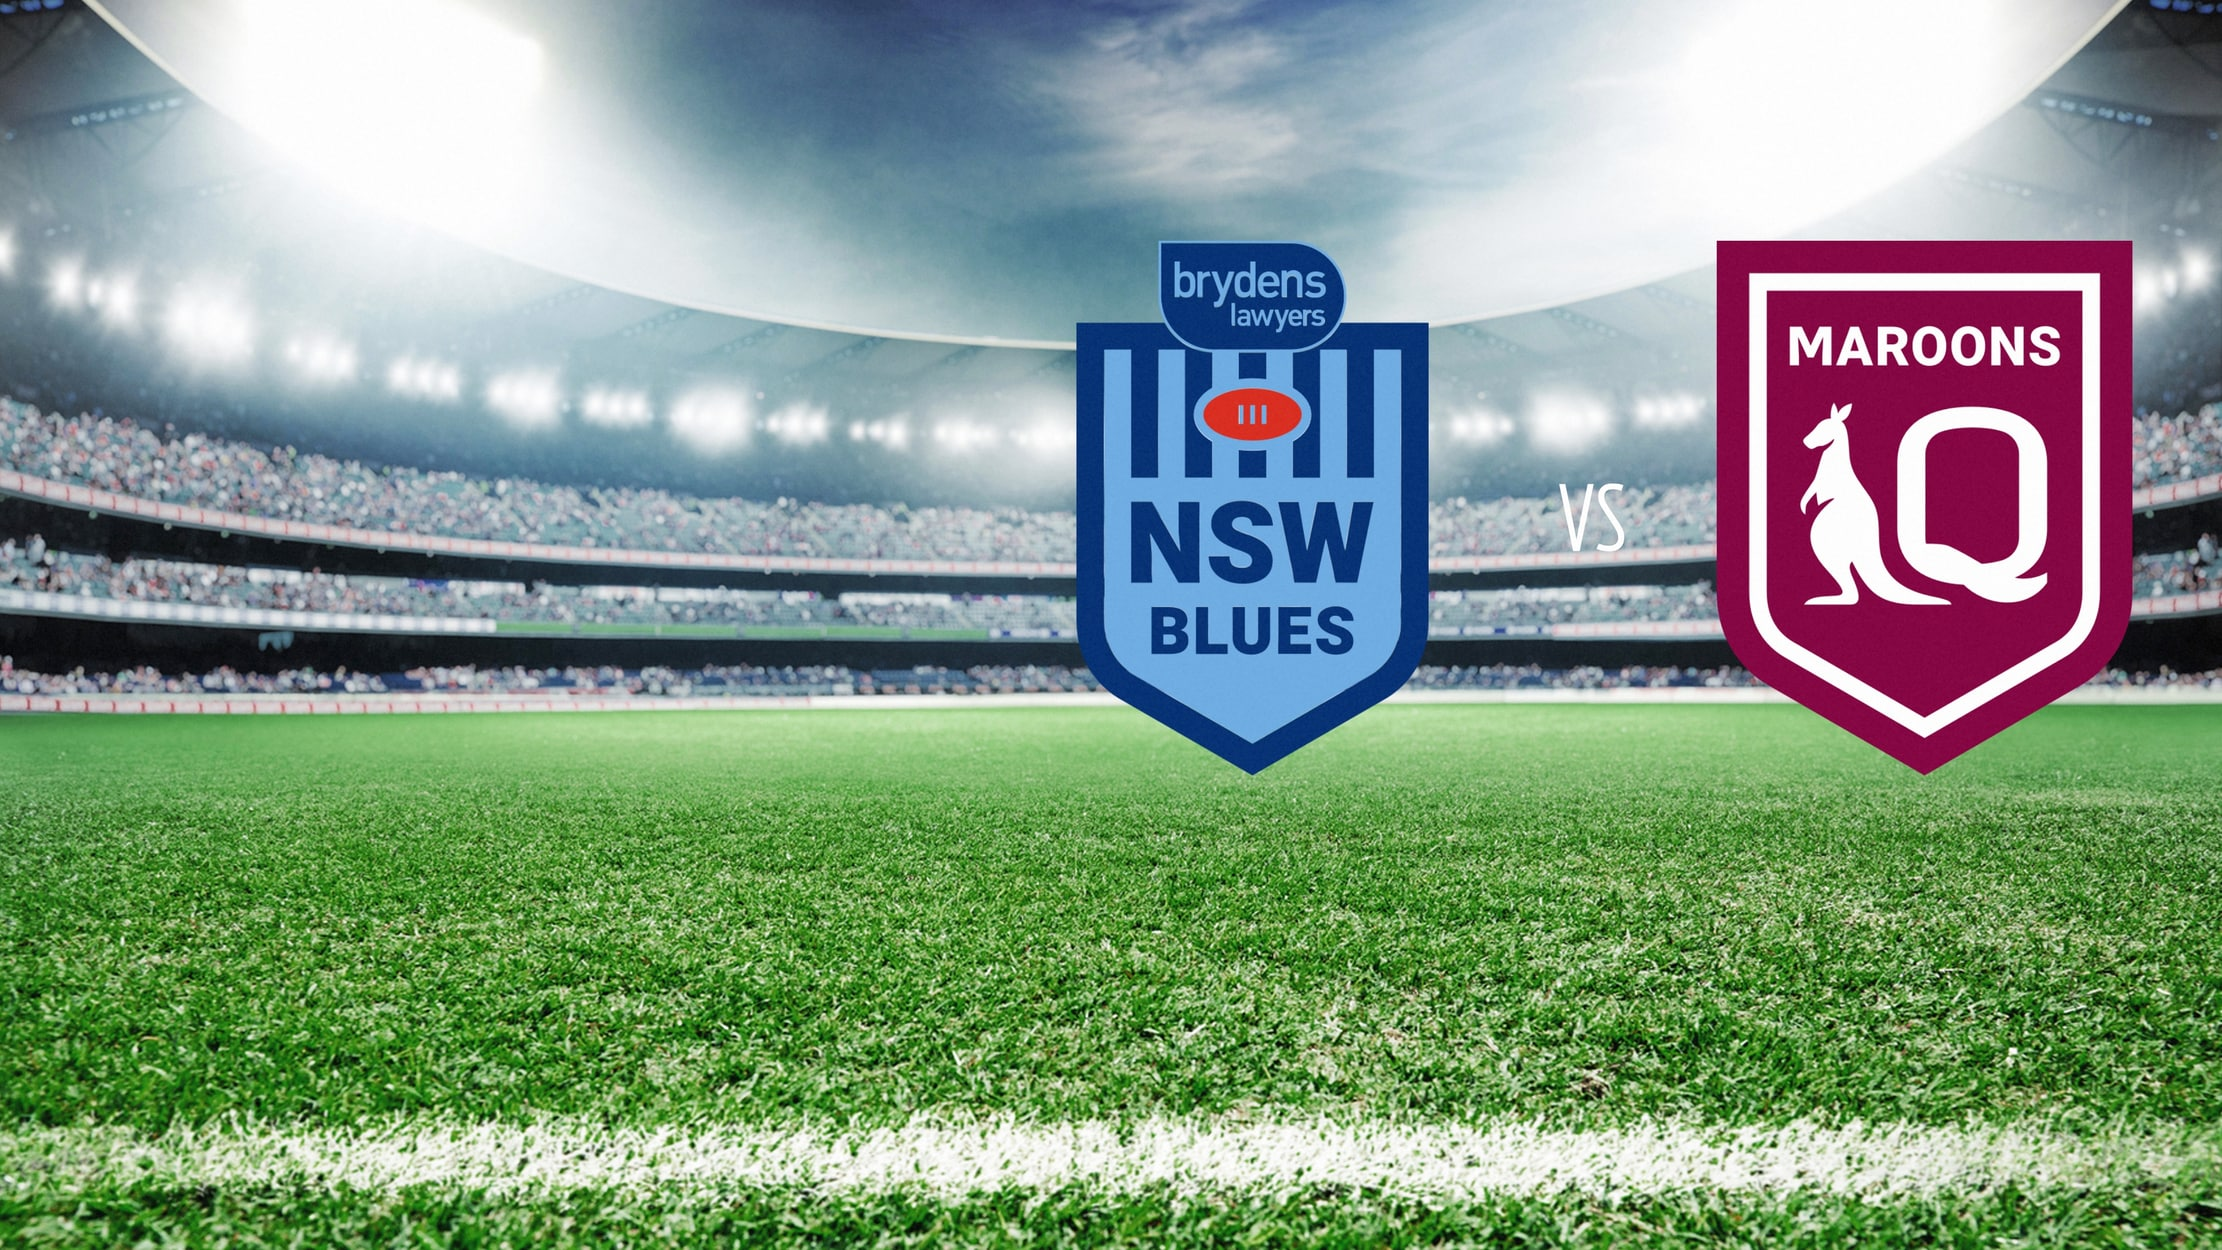 State of Origin - New South Wales Blues vs. Queensland Maroons seriesDetail